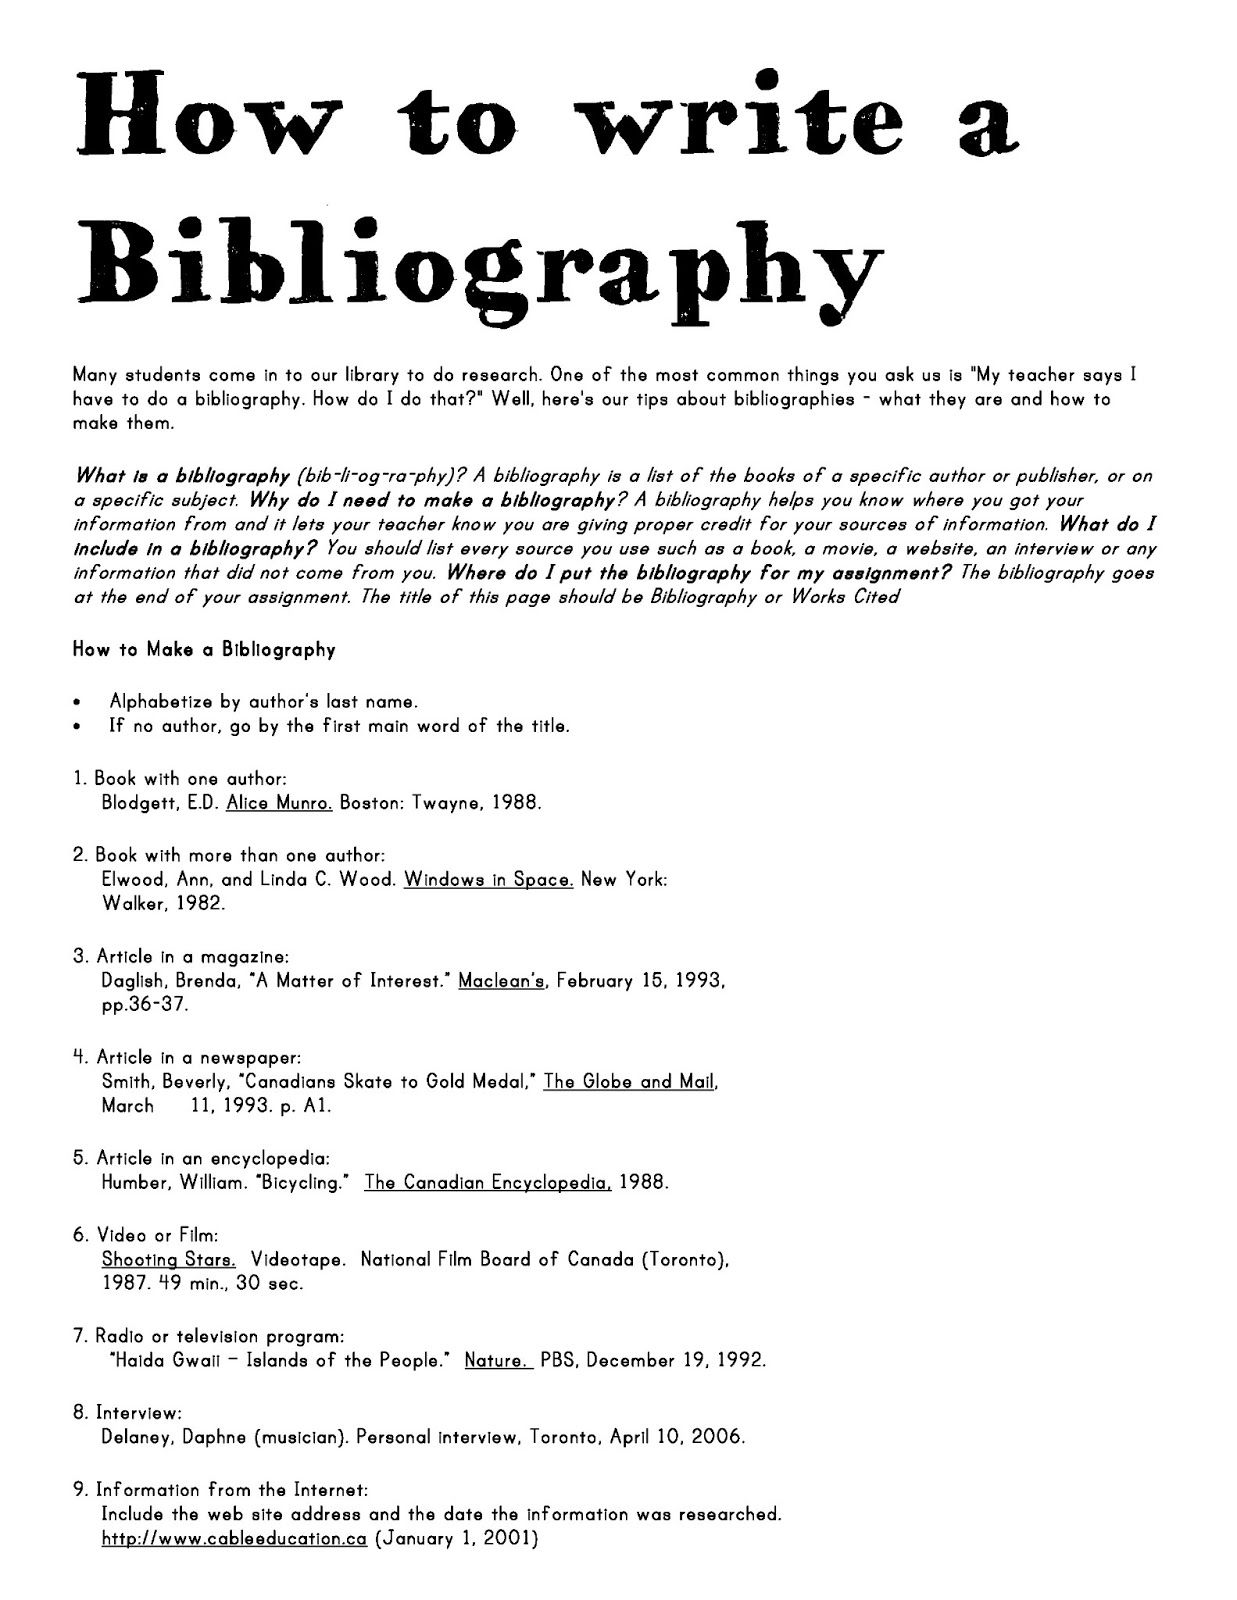 How to order a bibliography